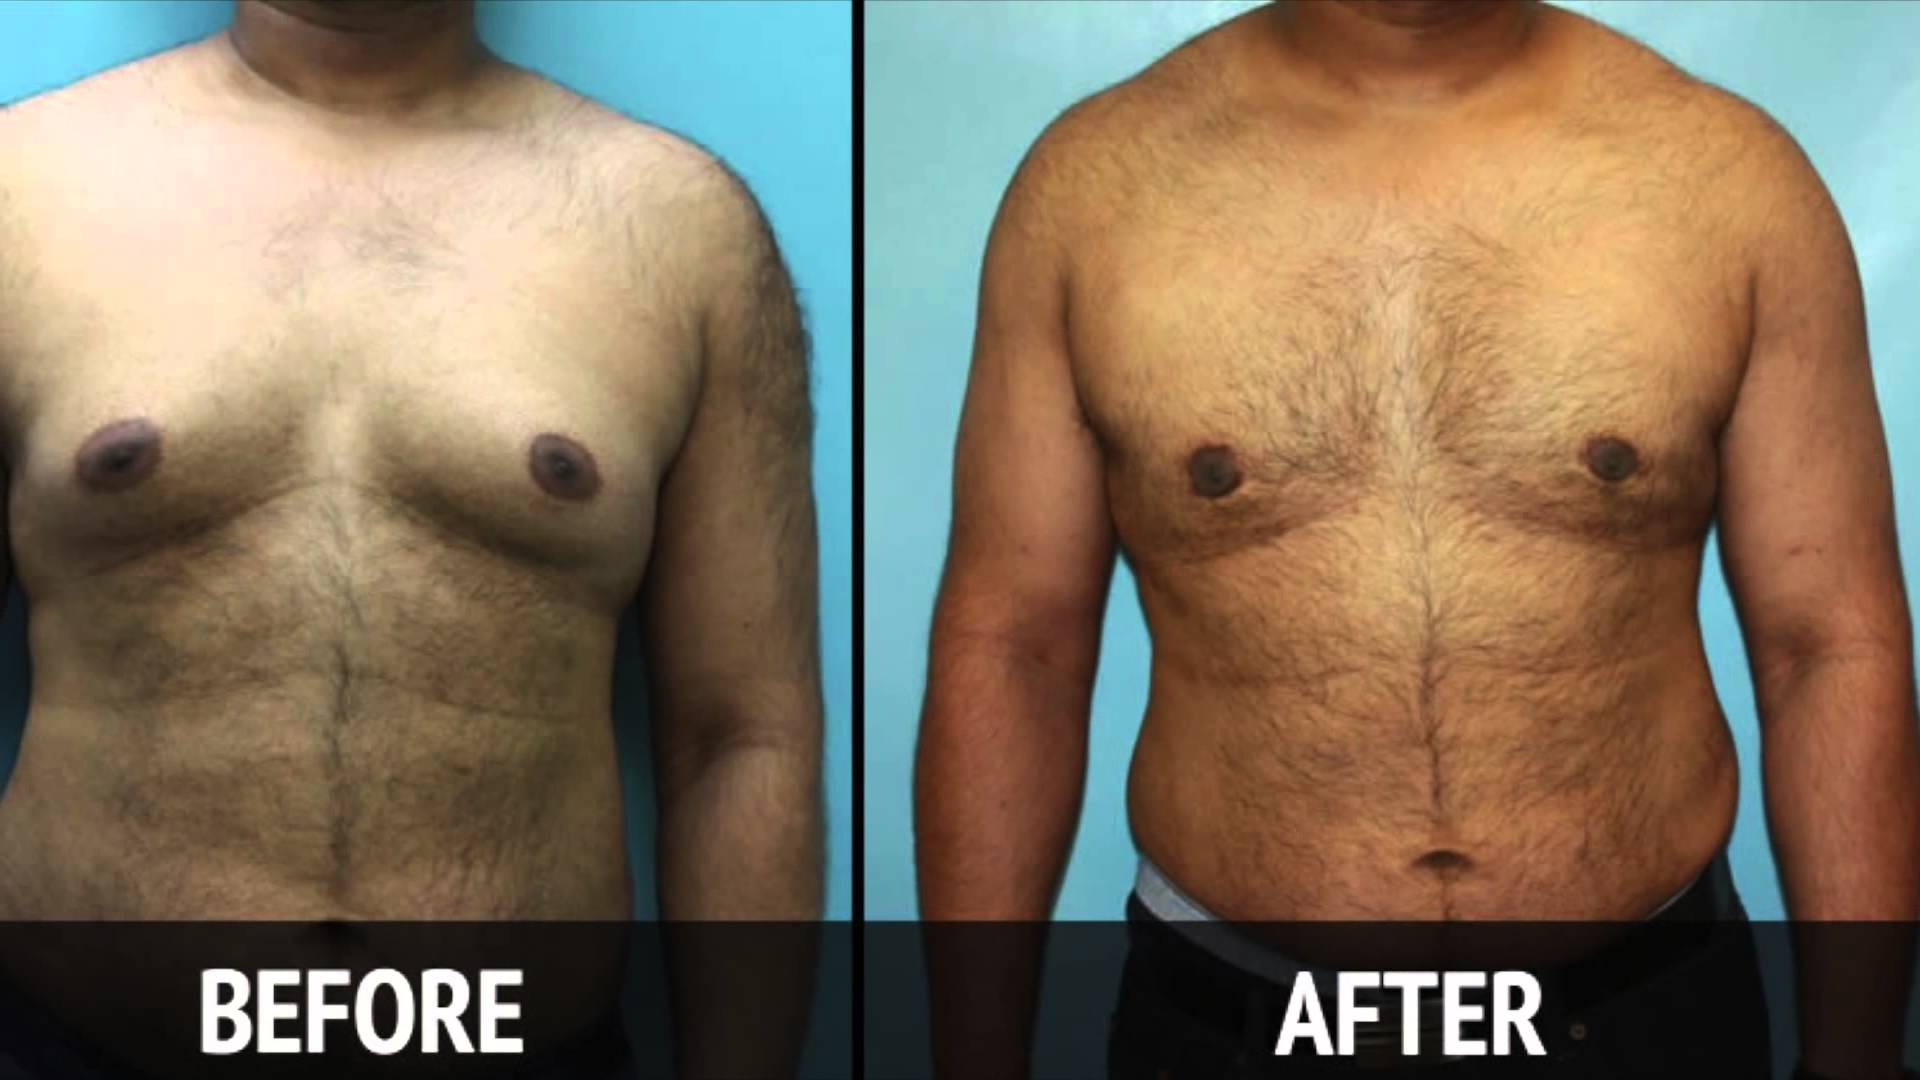 Male Breast Reduction Surgery Before & After Big